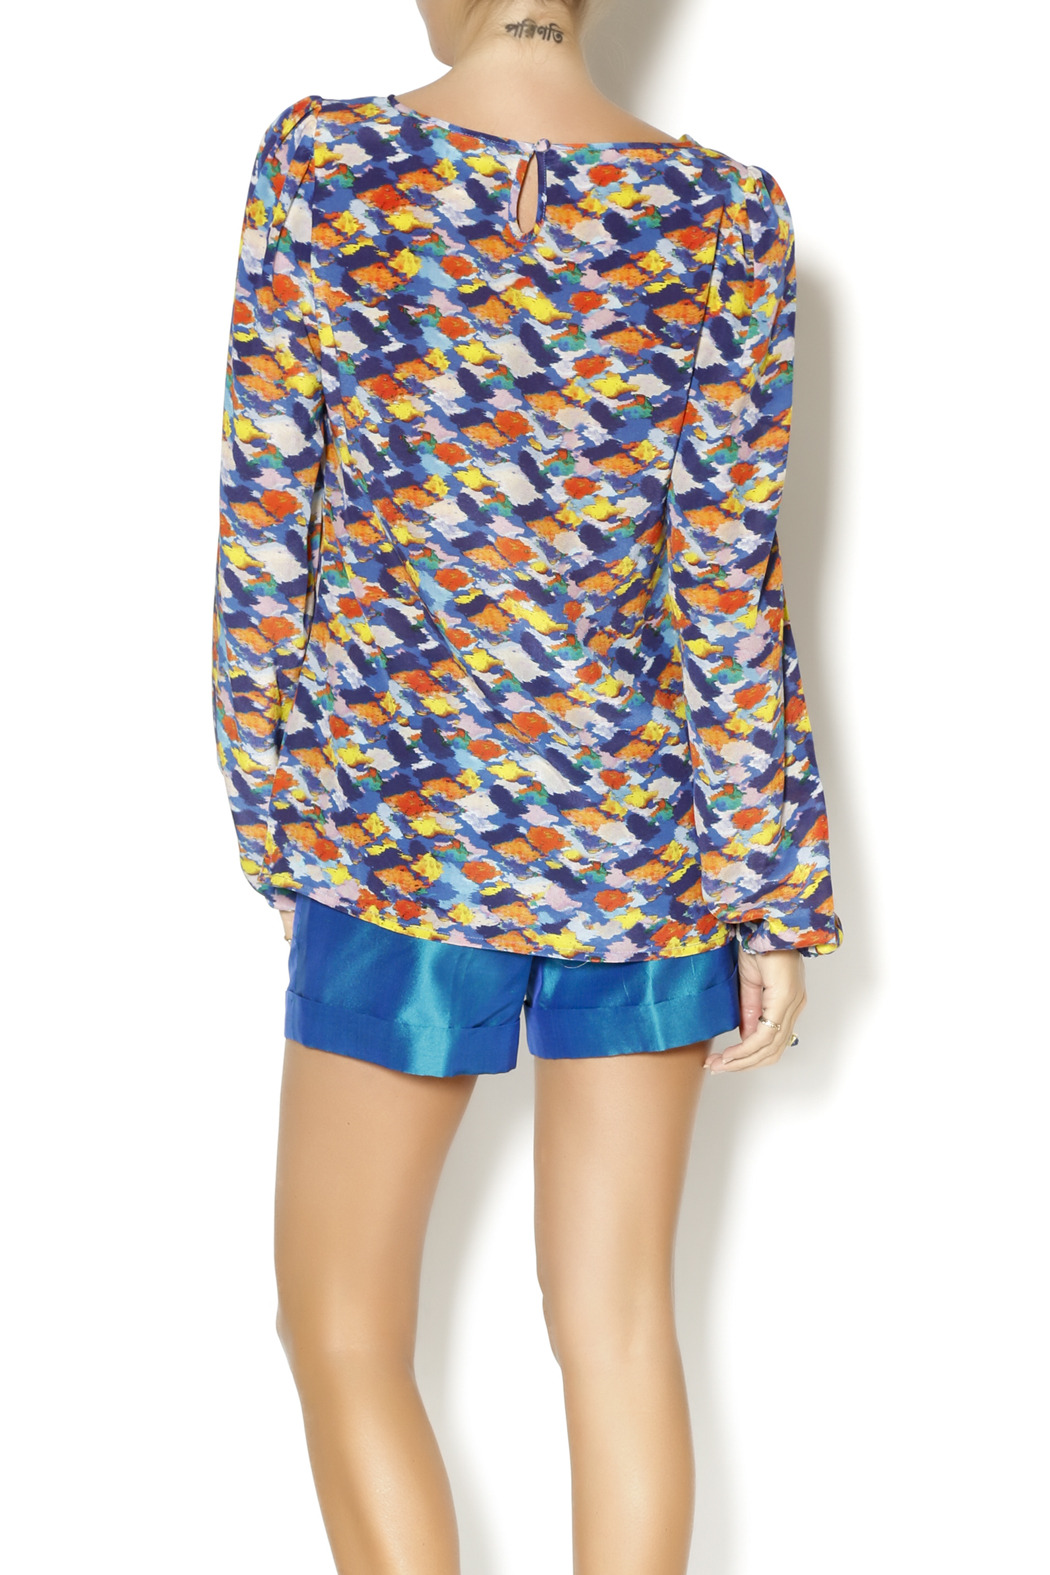 By Smith Monet Multicolor Blouse - Back Cropped Image